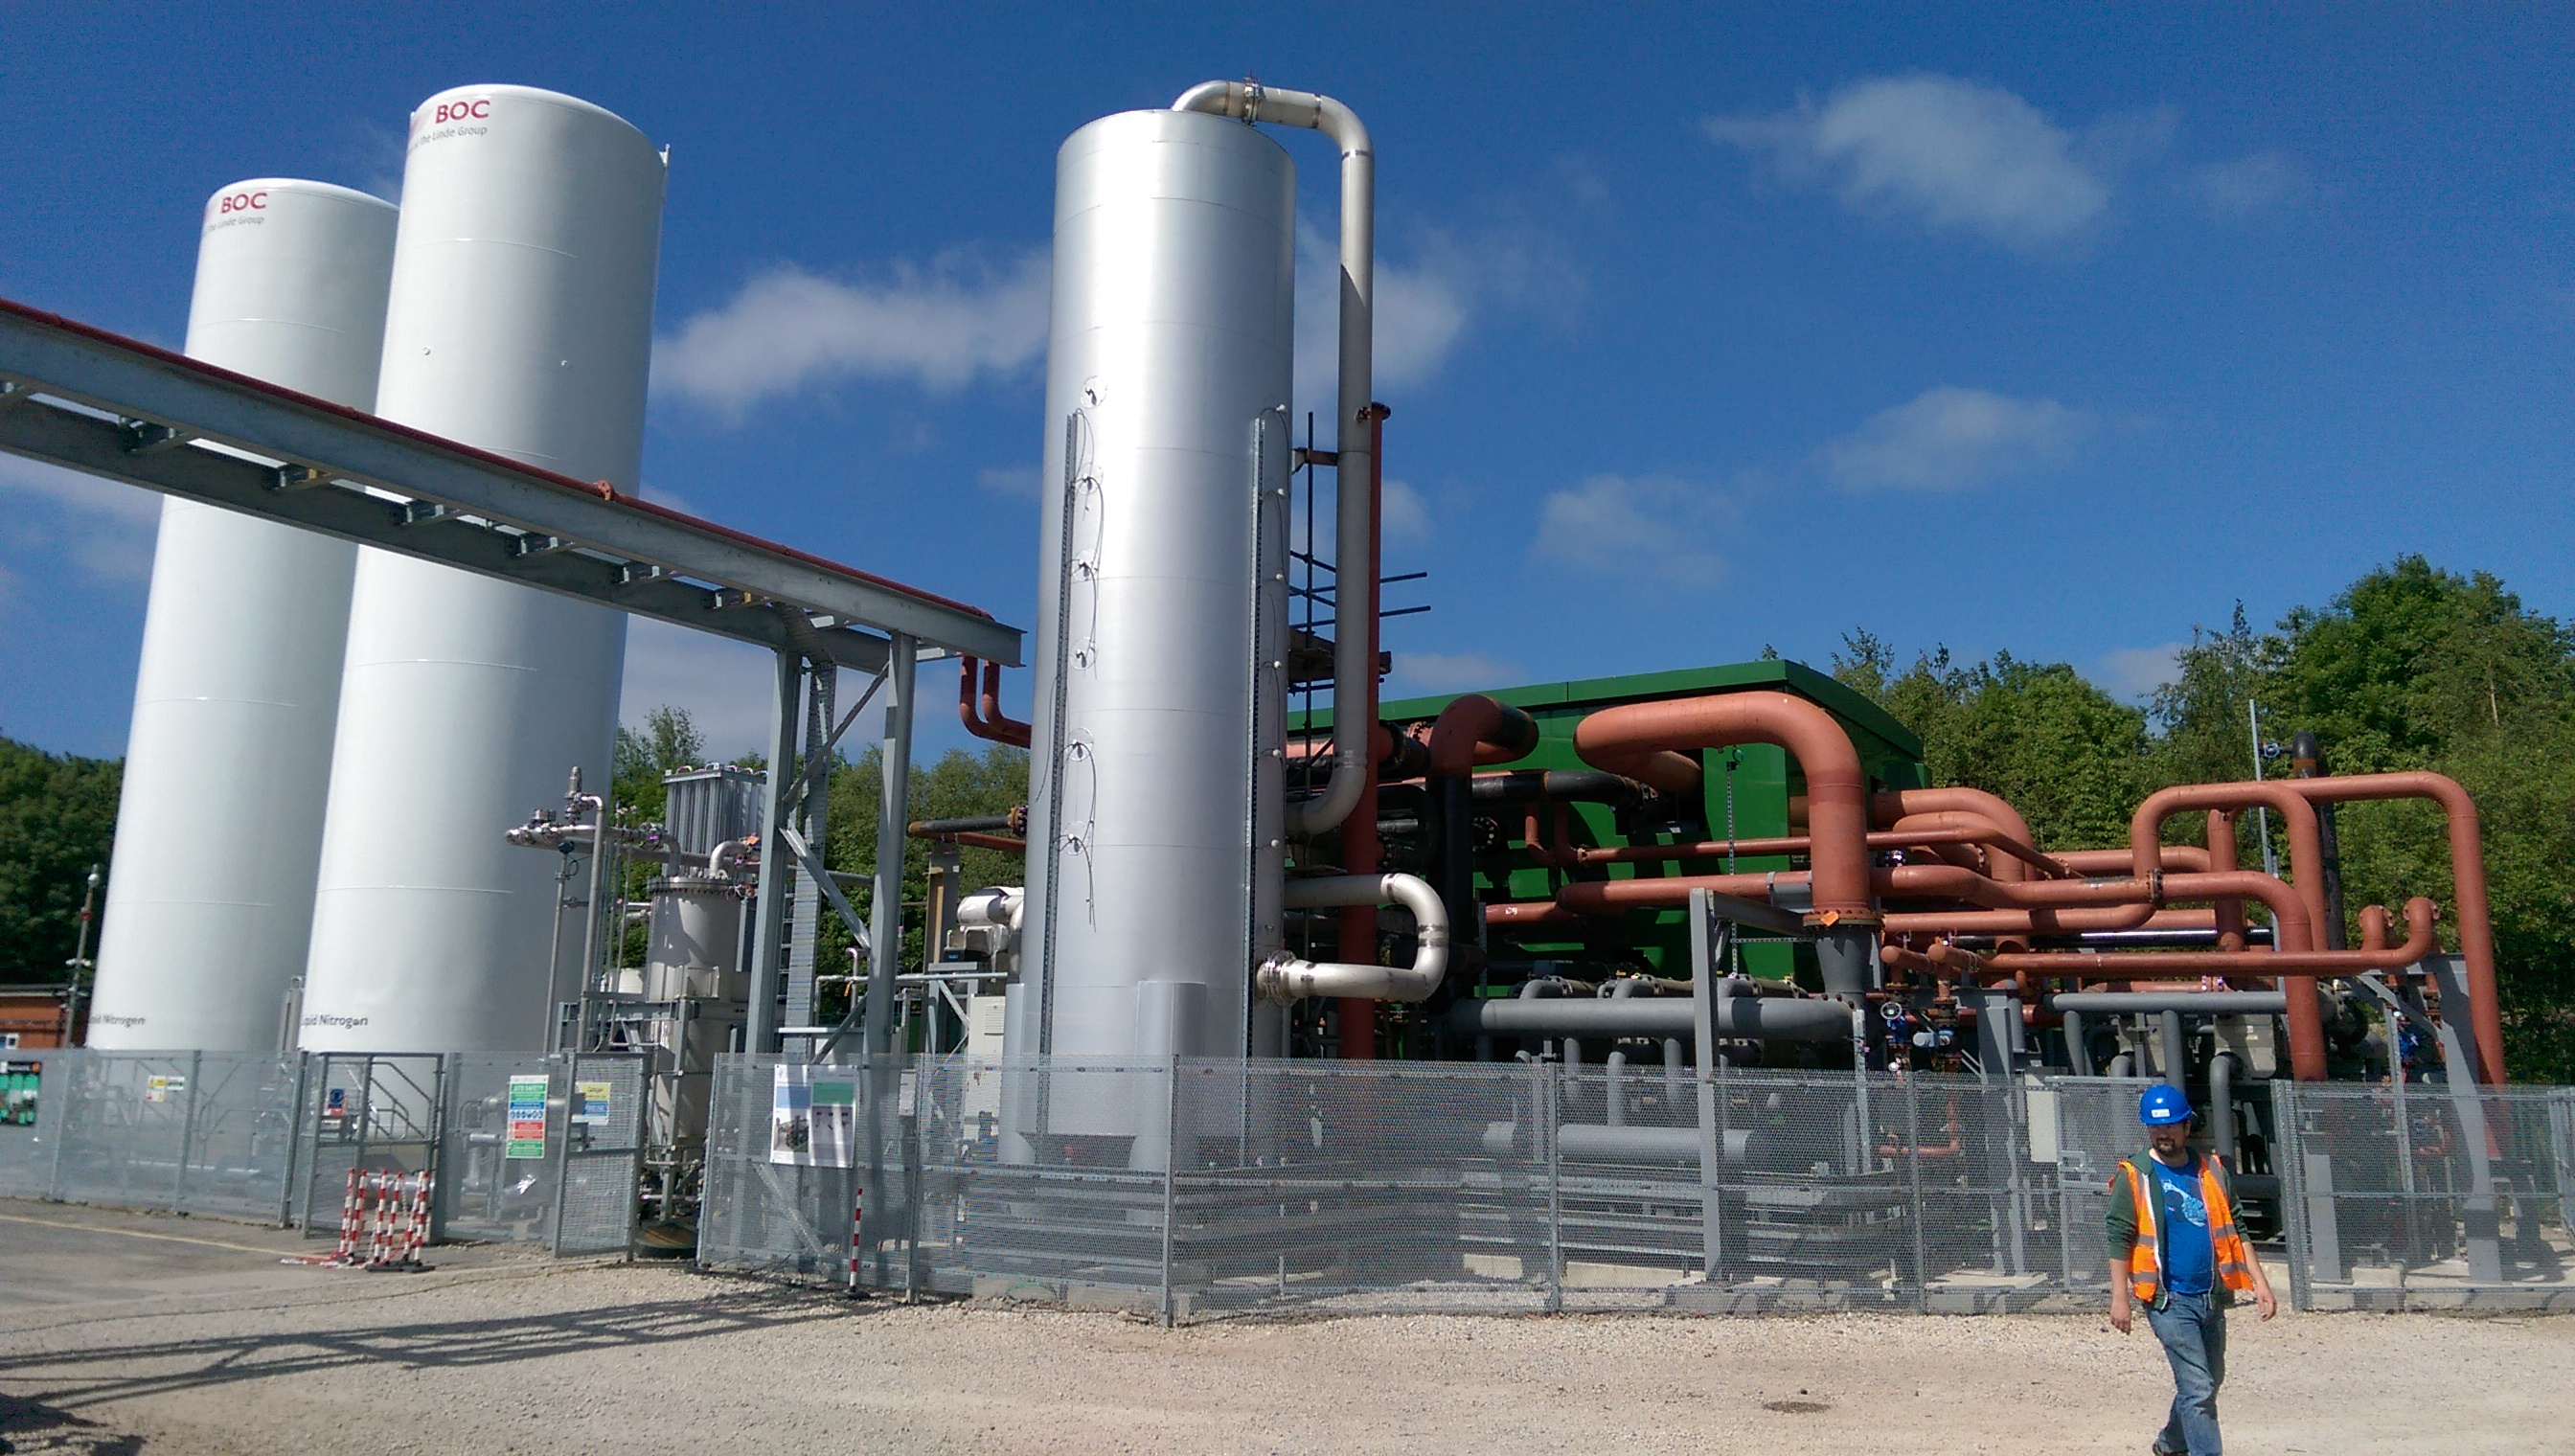 BBC recognises High View Power LAES energy facility supported by Optimal Industrial Automation